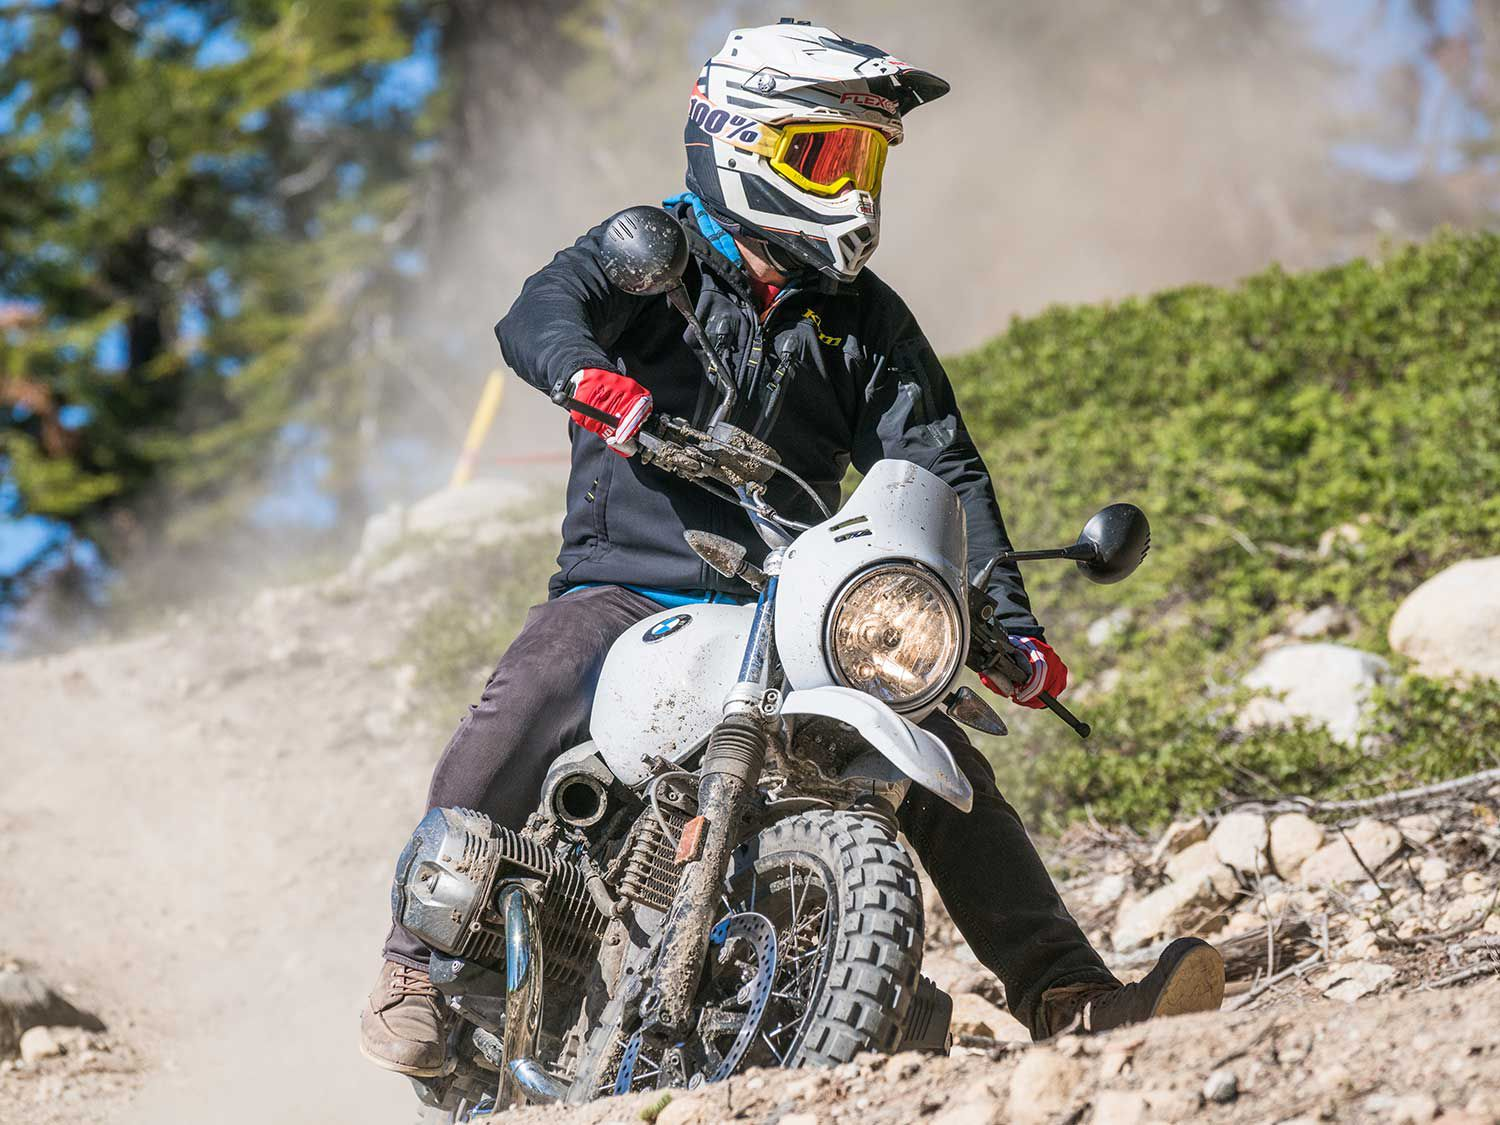 If you are up to the challenge, HighPipe Festival puts you on track for some rough yet entertaining off-road rides in addition to the paved routes.